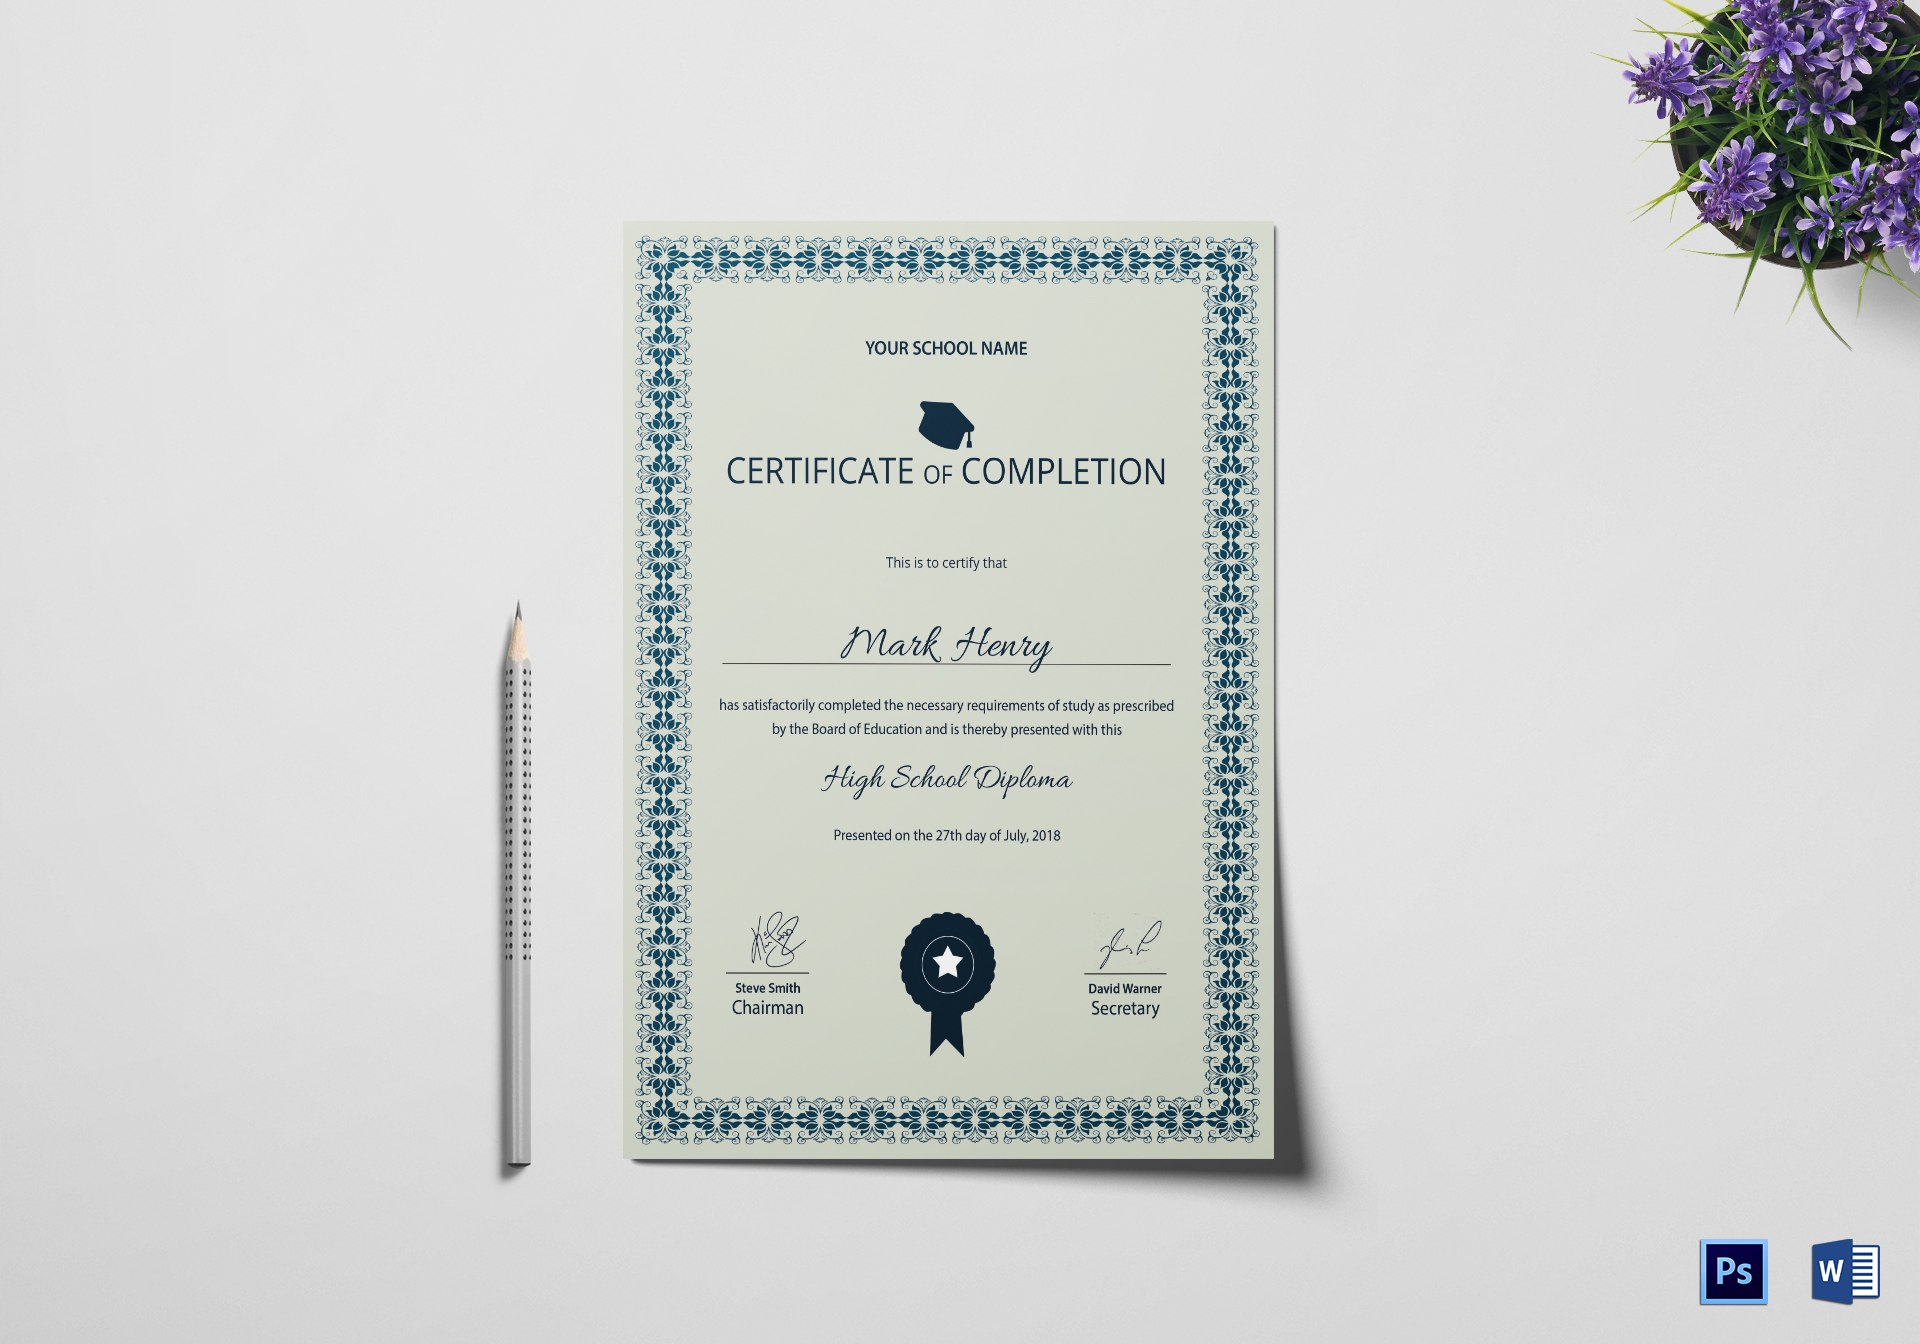 High School Diploma Completion Certificate Design Template In Psd Word In Certificate Of Completion Word Template